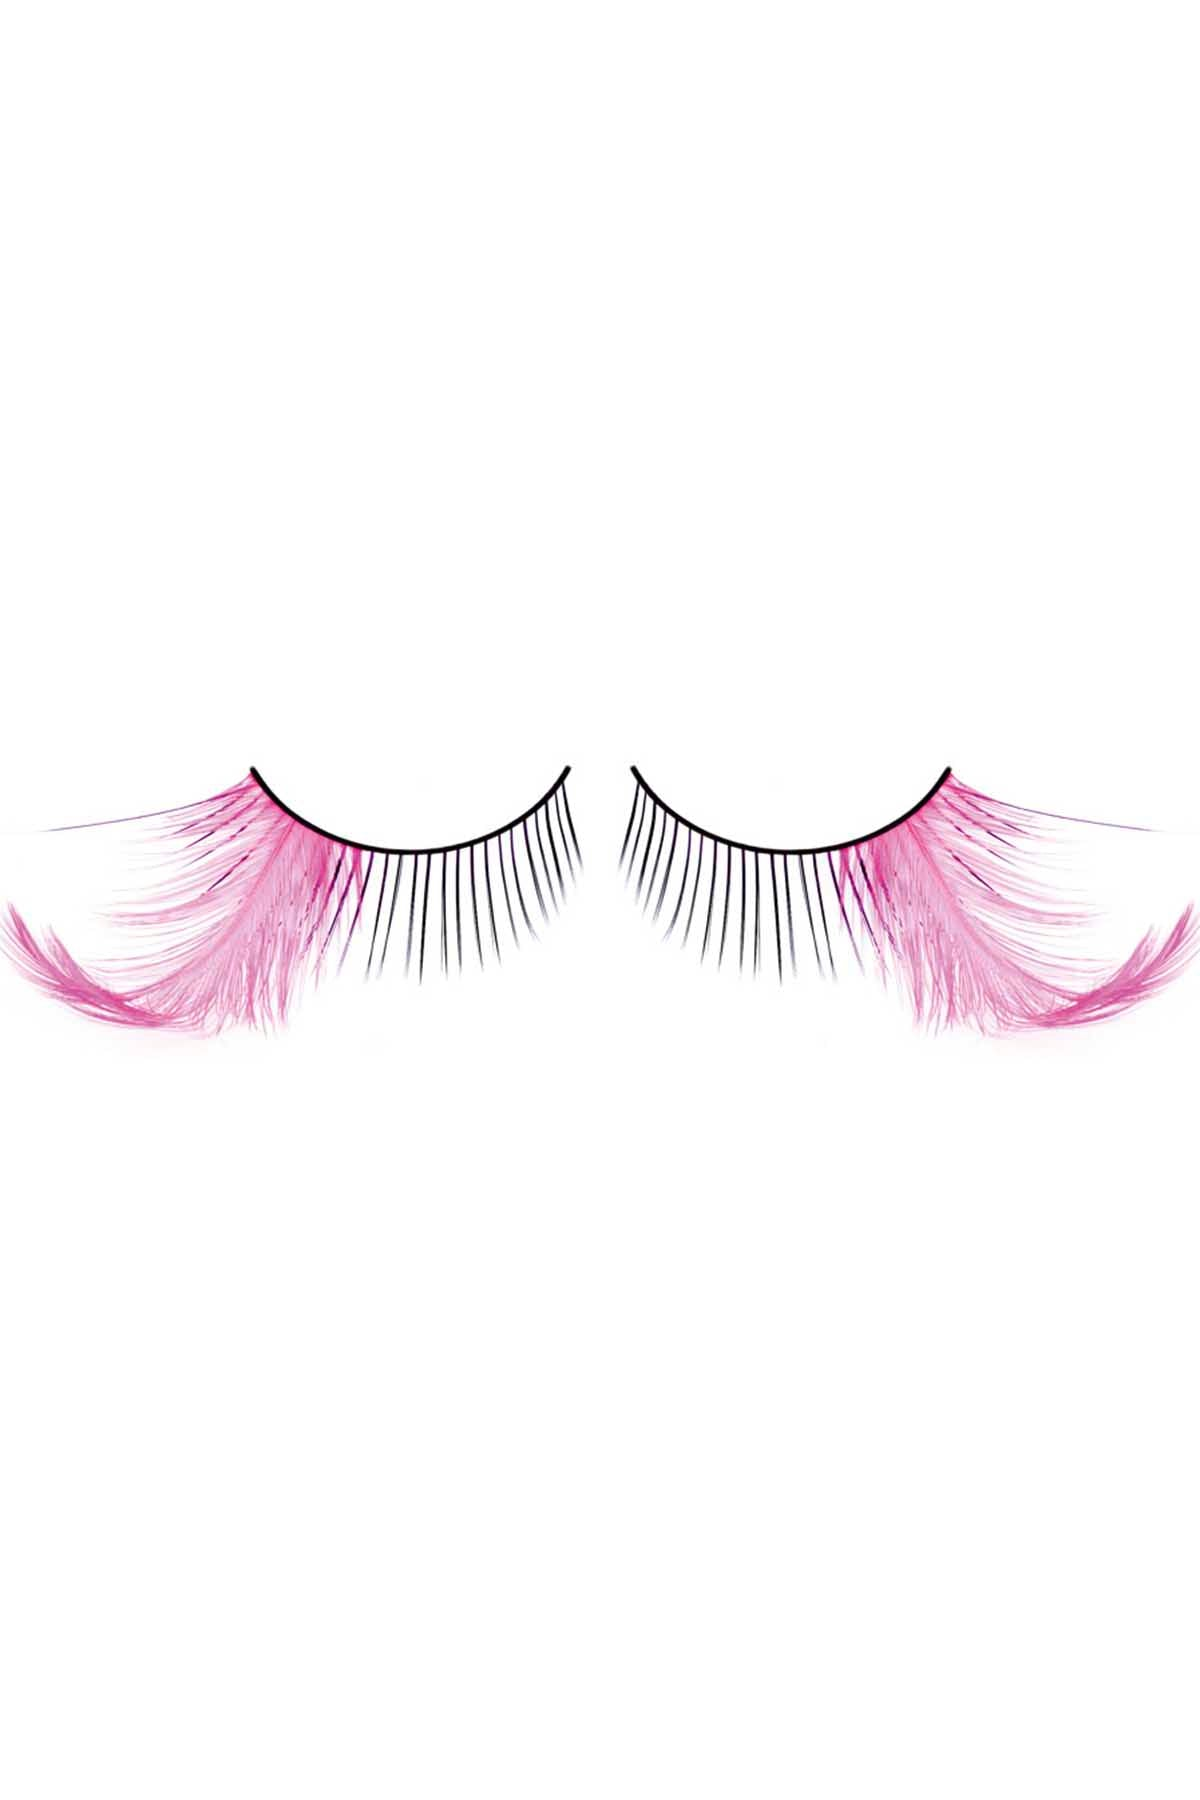 Baci Black with Pink Feather Paradise Dreams Eyelashes